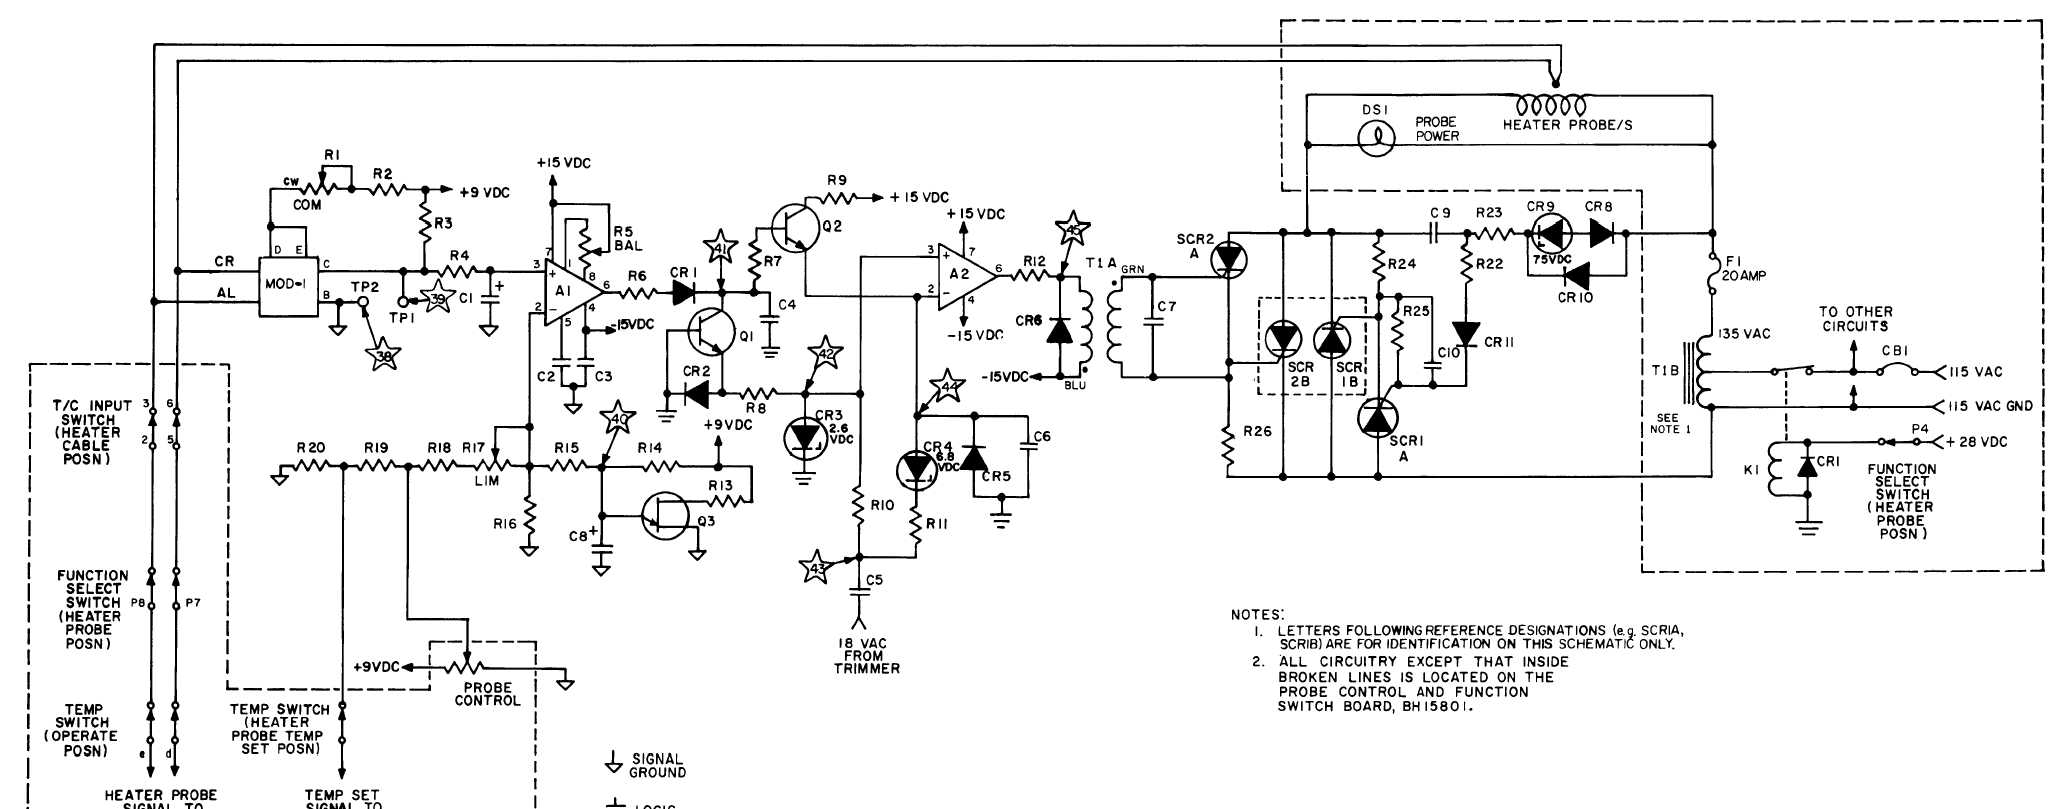 fo 1 schematic diagram of heater probe control circuit rh aviationandaccessories tpub com circuit diagram heater symbol circuit diagram interactive